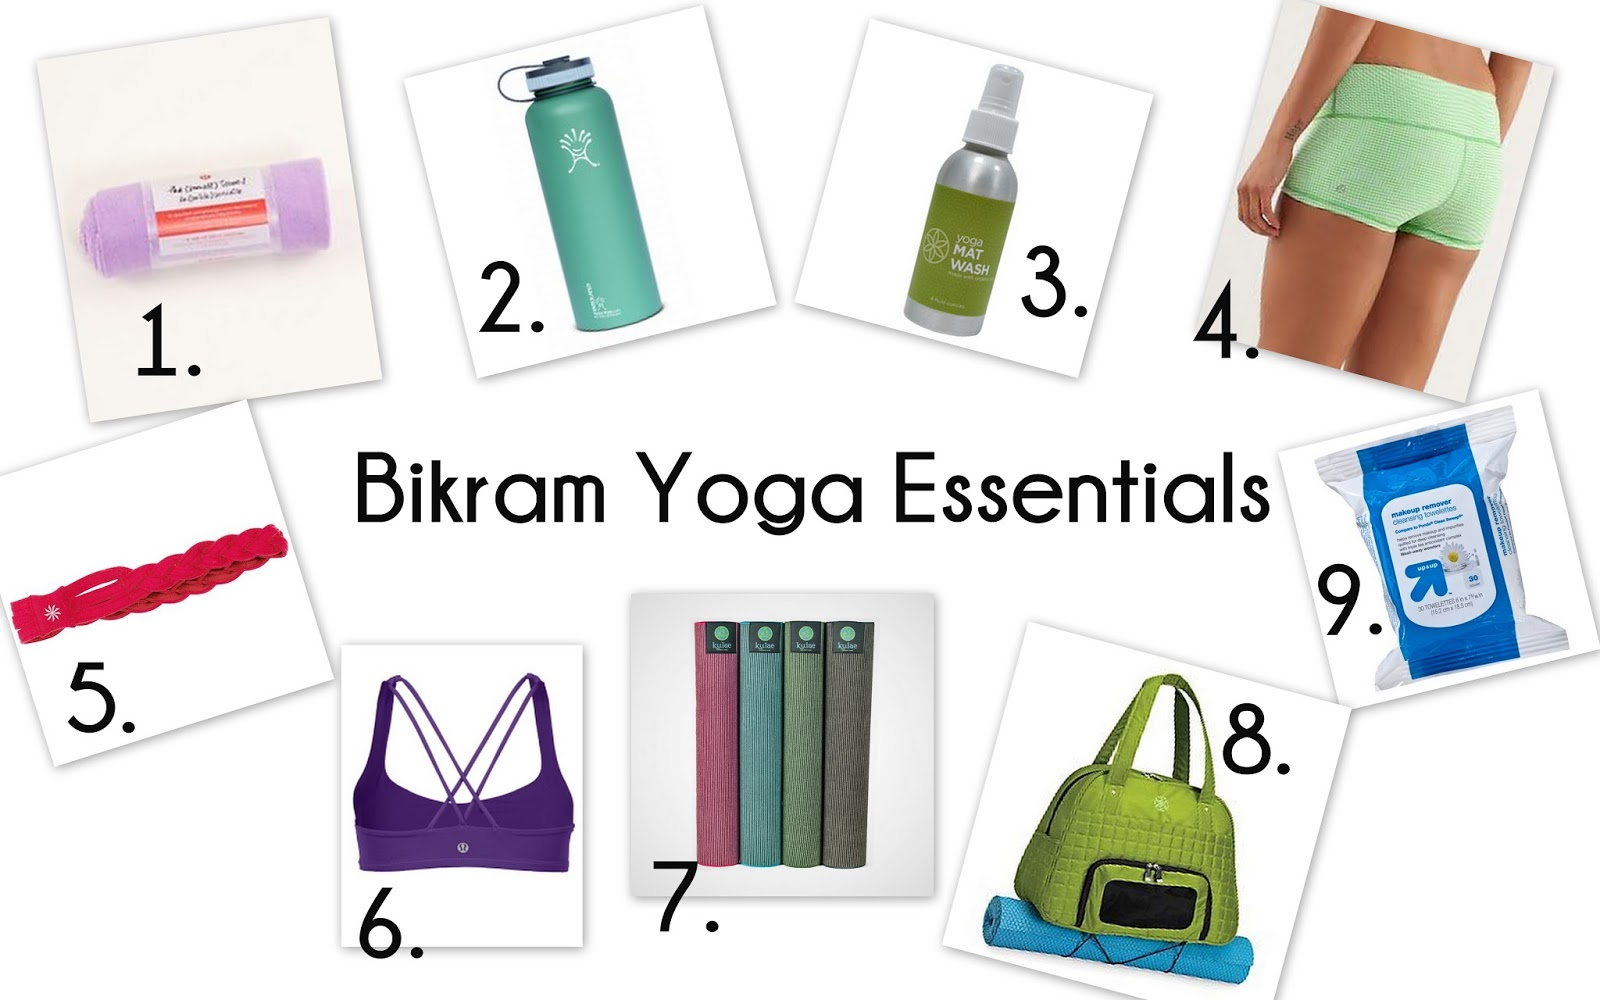 Bikram Yoga Essentials